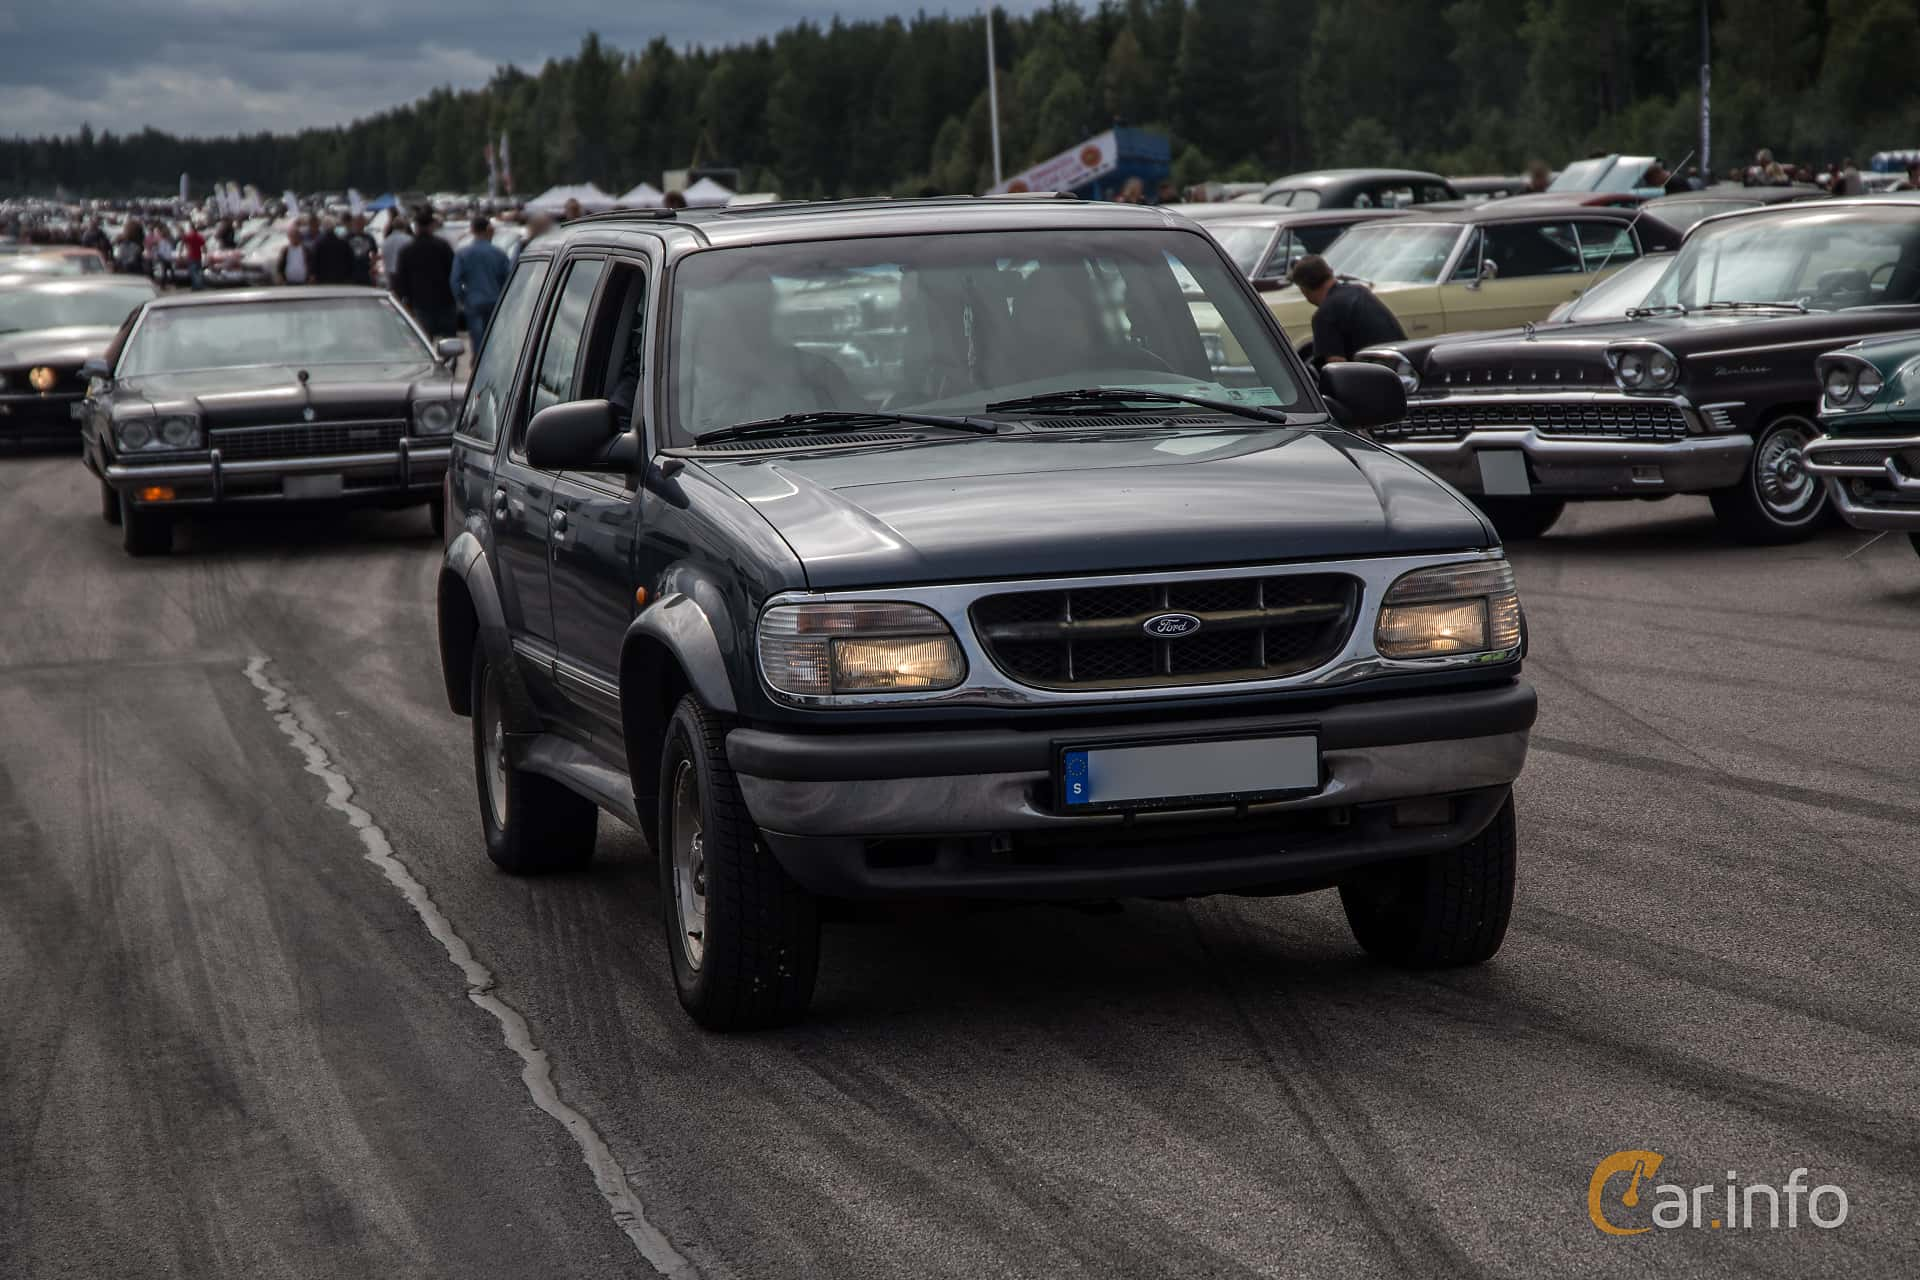 Ford Explorer 4.0 V6 4WD Automatic, 162hp, 1998 at Power End of Summer Meet Emmaboda 2017